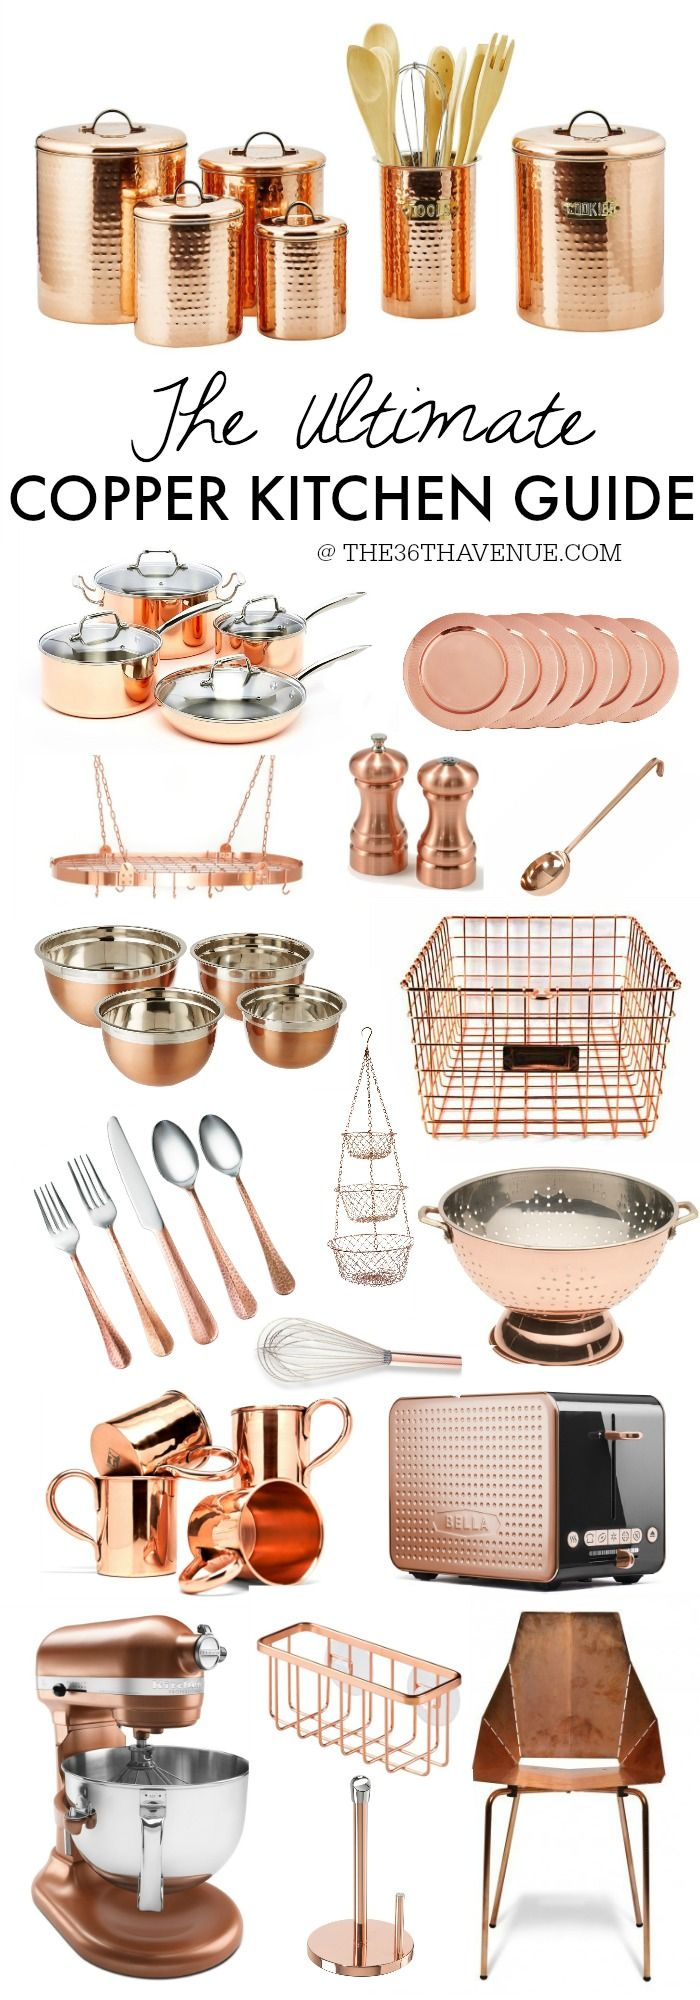 The 25+ Best Copper Kitchen Accessories Ideas On Pinterest